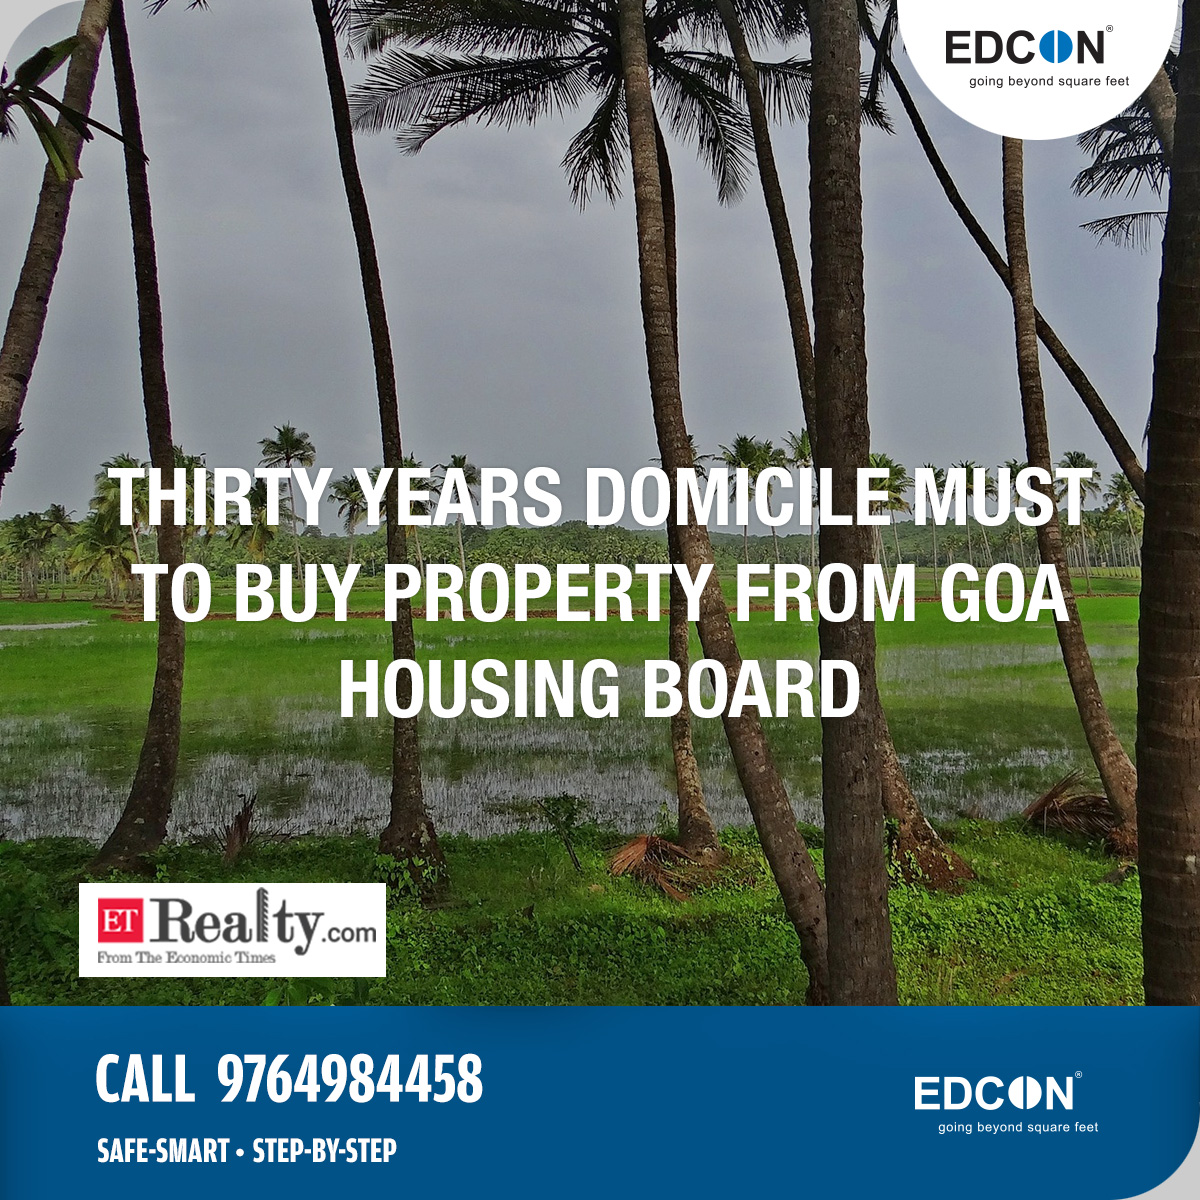 Thirty years domicile must to buy property from Goa Housing Board